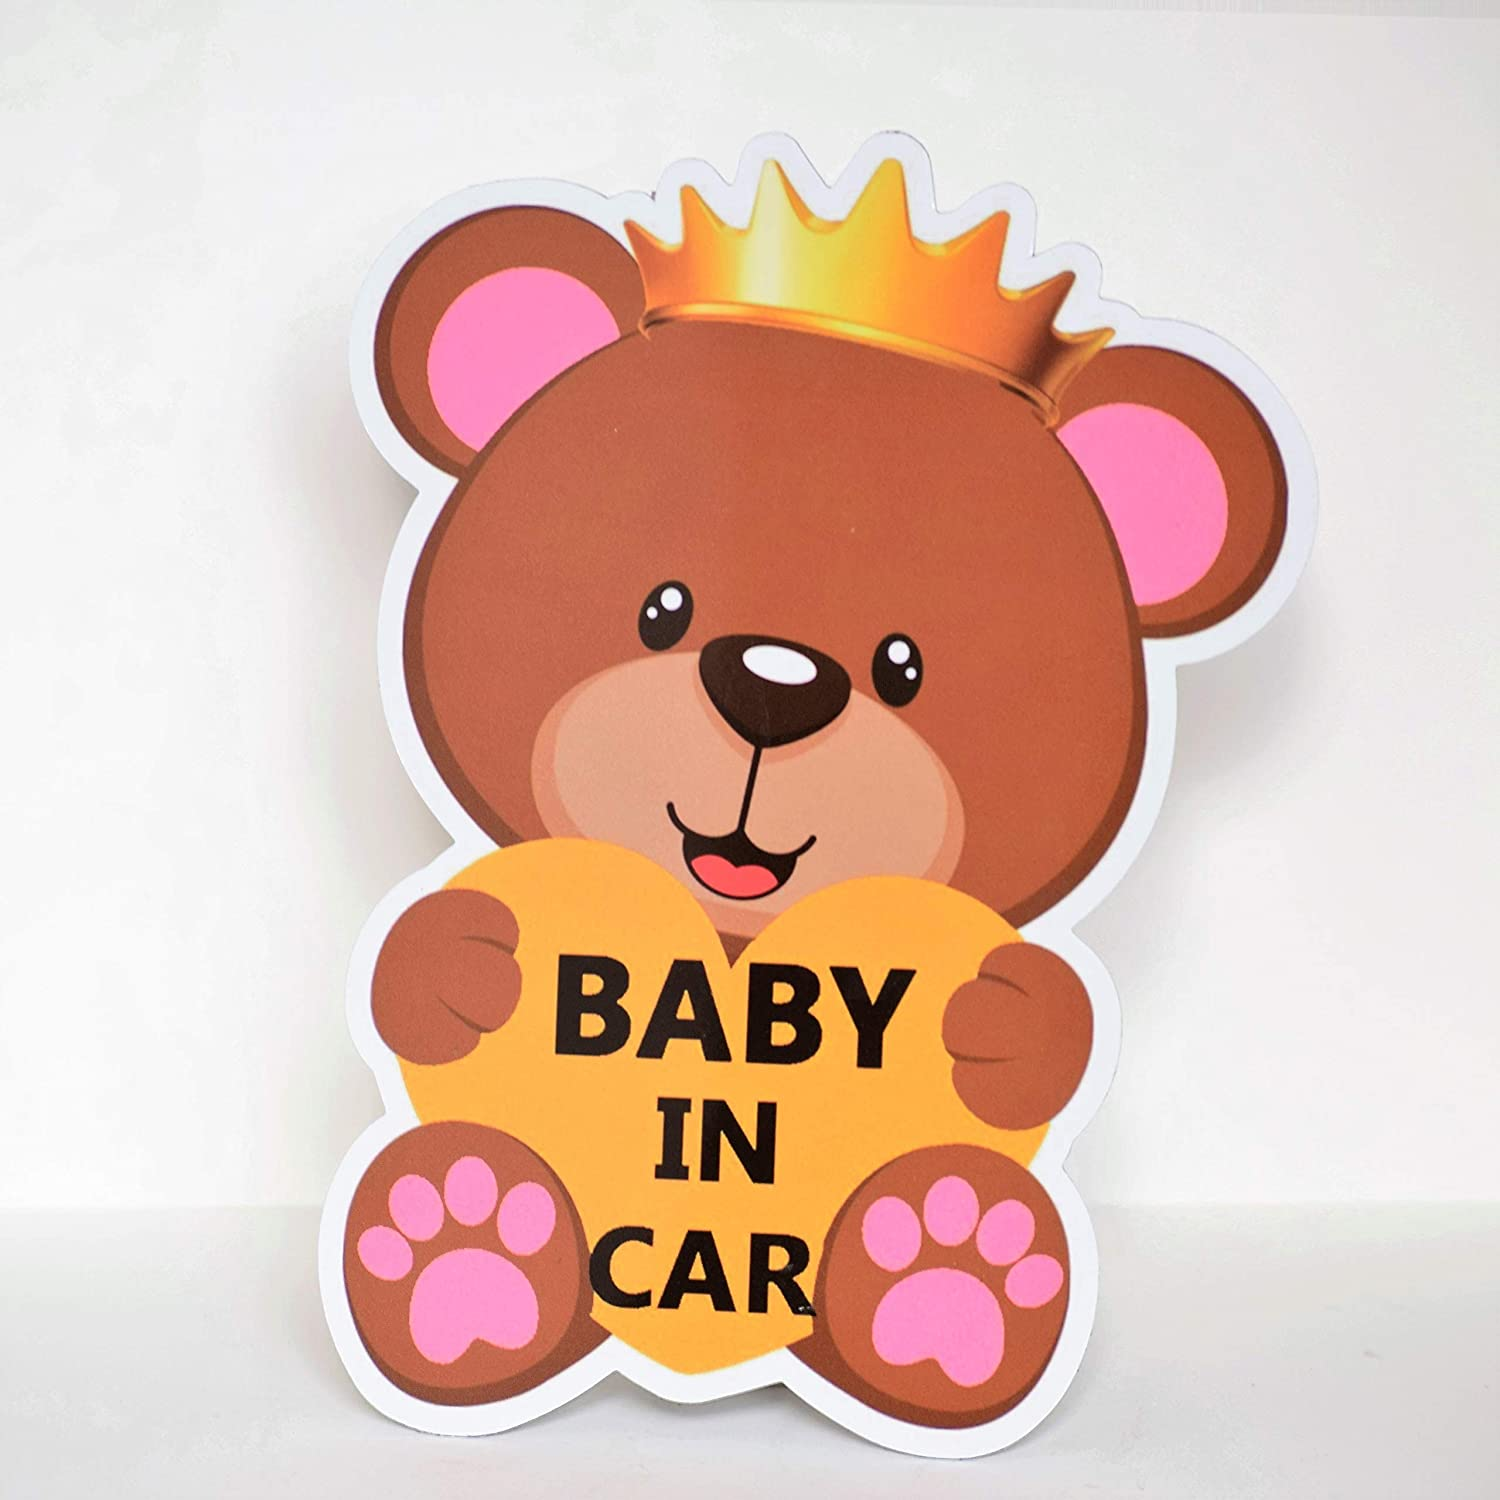 CHUBBYCHEEKS Baby in CAR Magnet Sign for Car, Water Resistant, Weather Resistant with UV Protected Film (Pink)